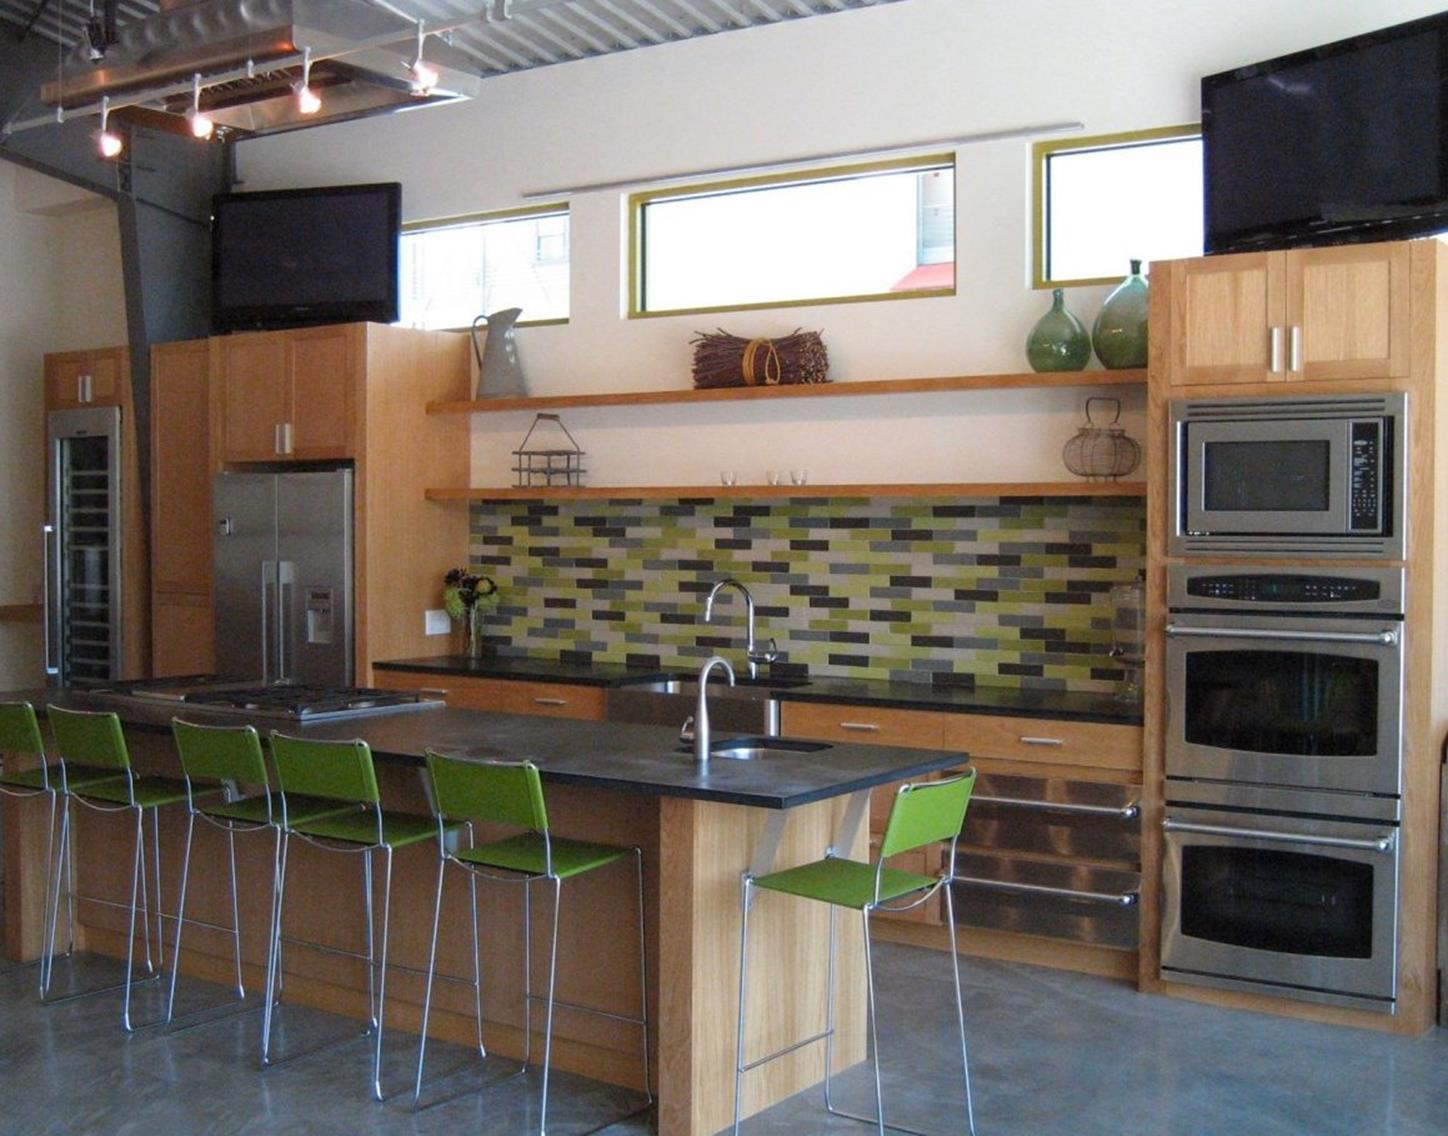 Kitchen Makeover Ideas On A Budget 12